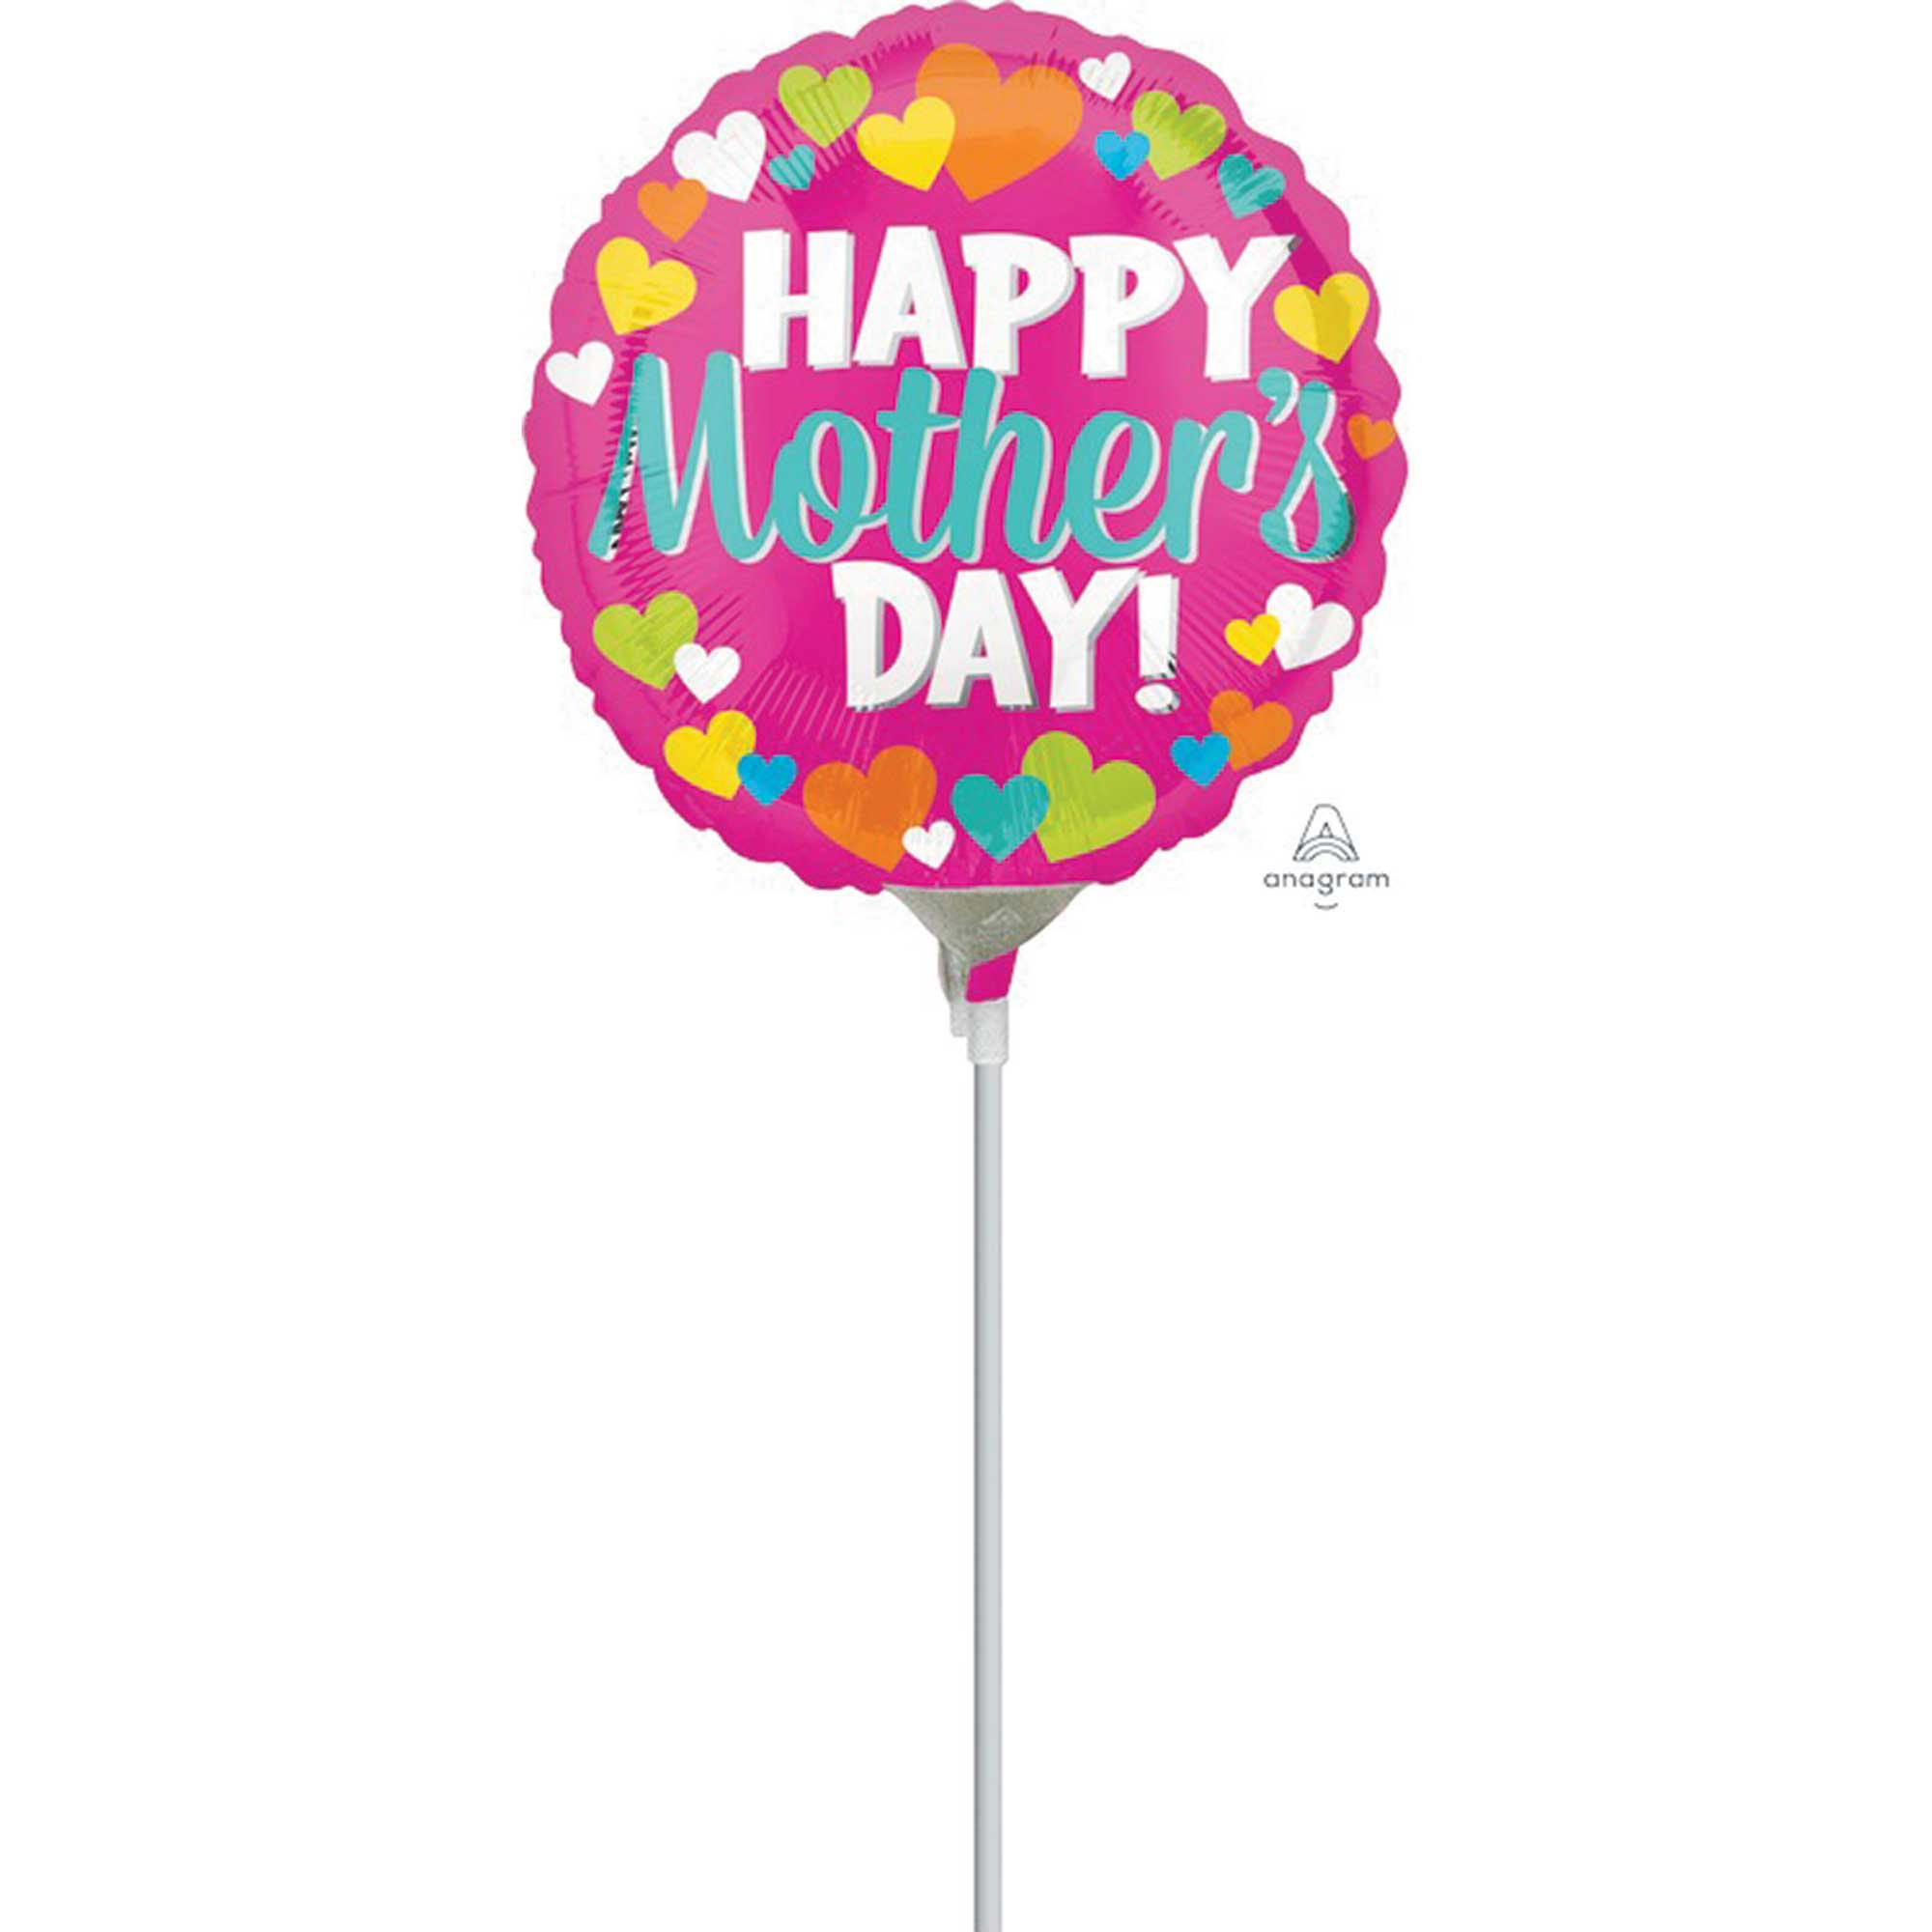 22cm Happy Mother's Day Hearts A15